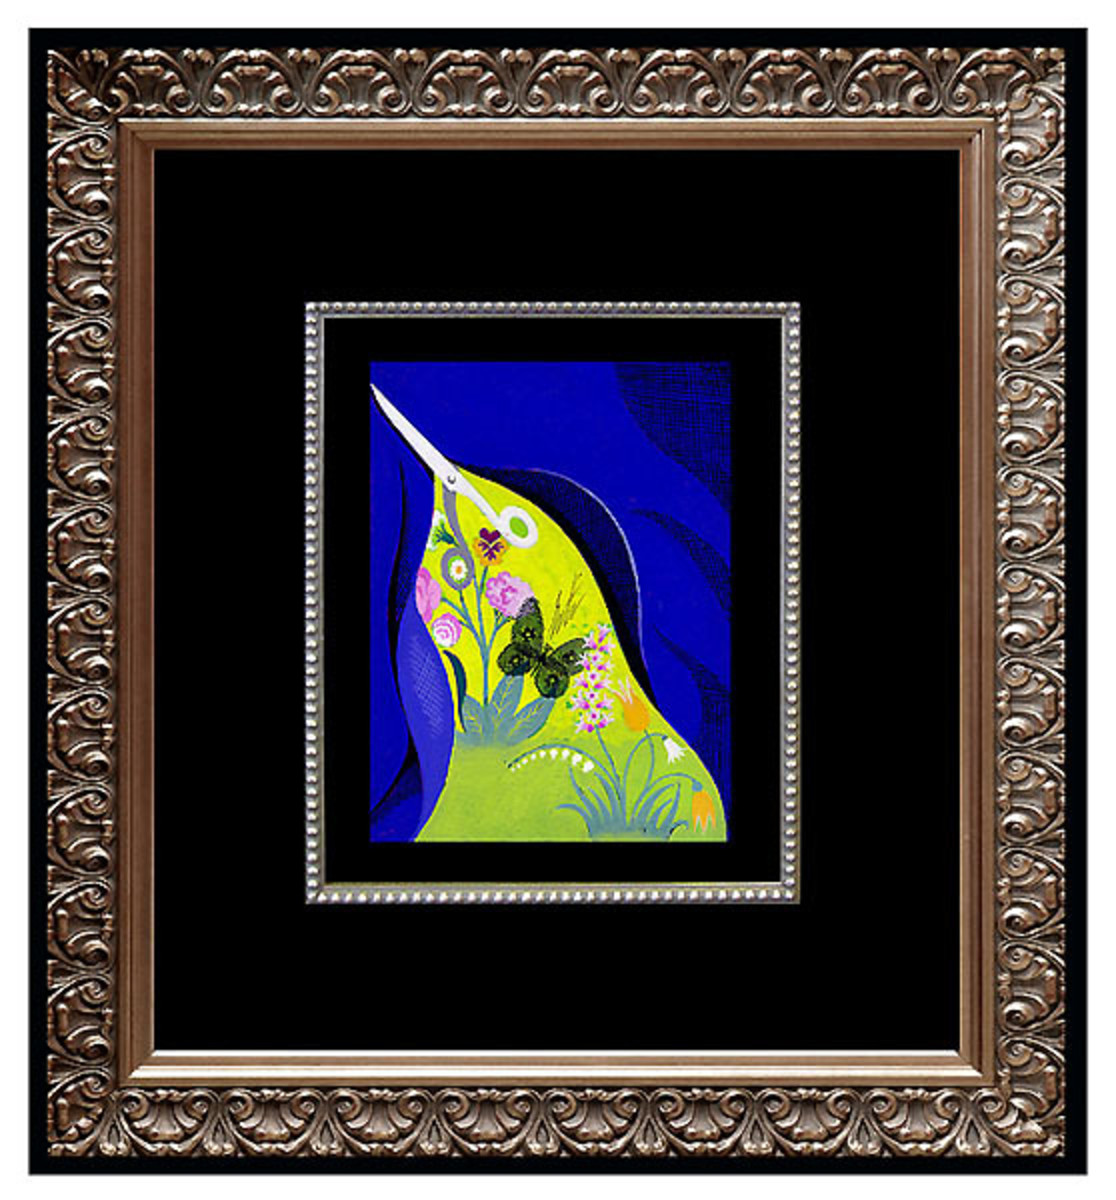 Erte in print - modern lime green with dark background in beautiful ornate frame